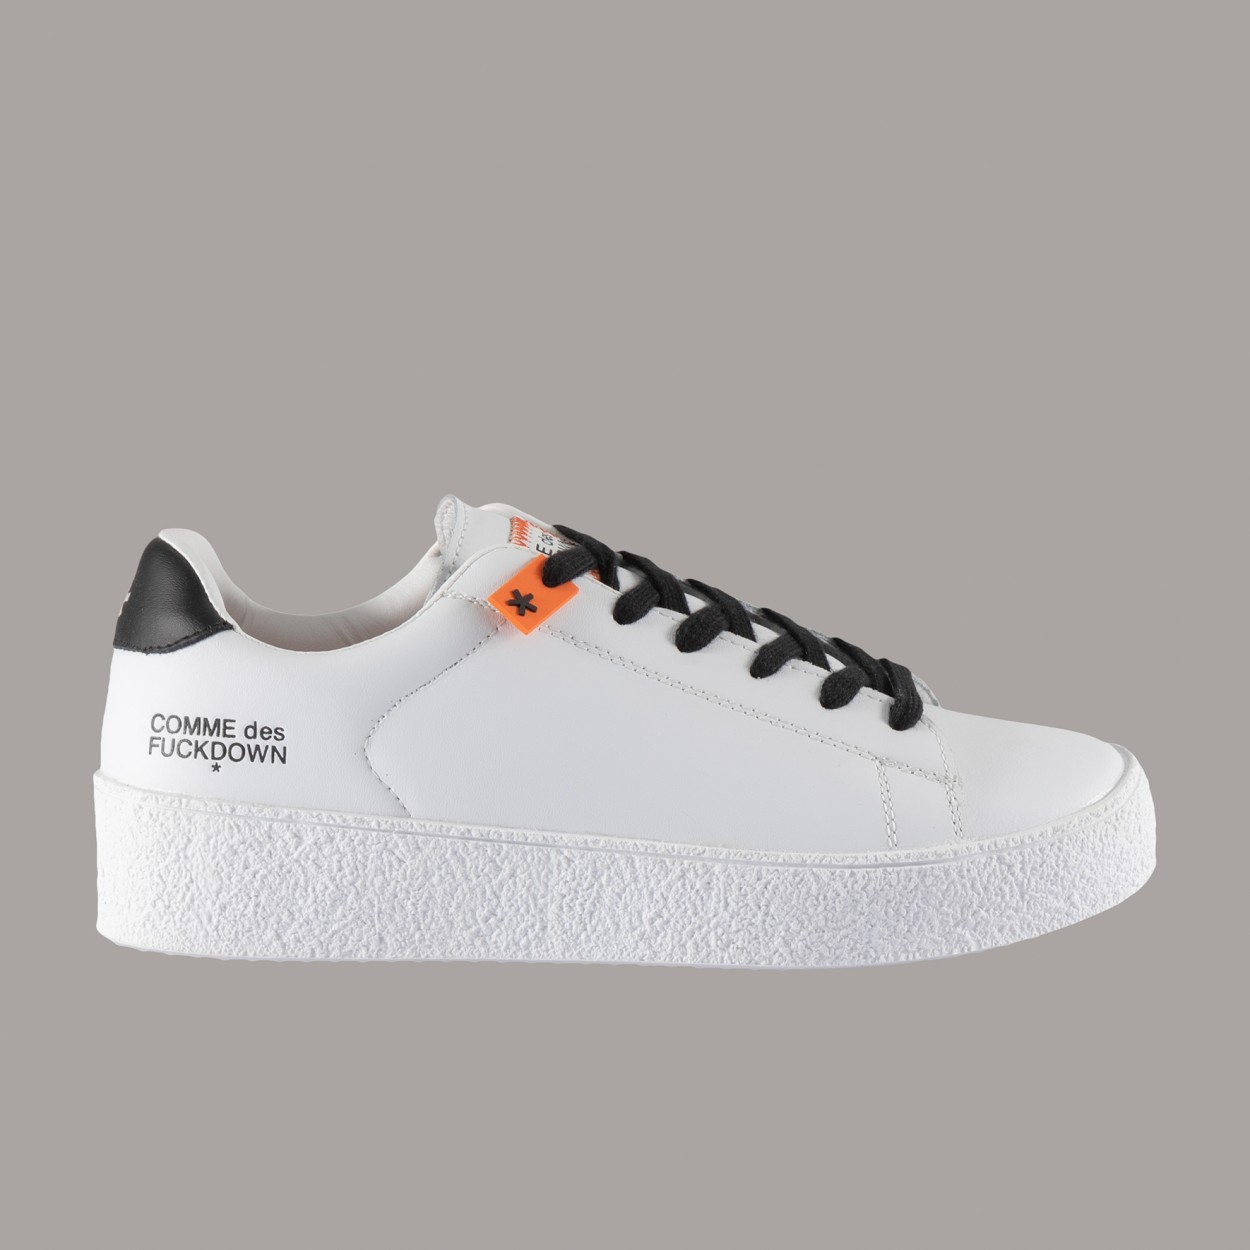 SNEAKER - CDF03STREETBC - COMME DES FKDOWN